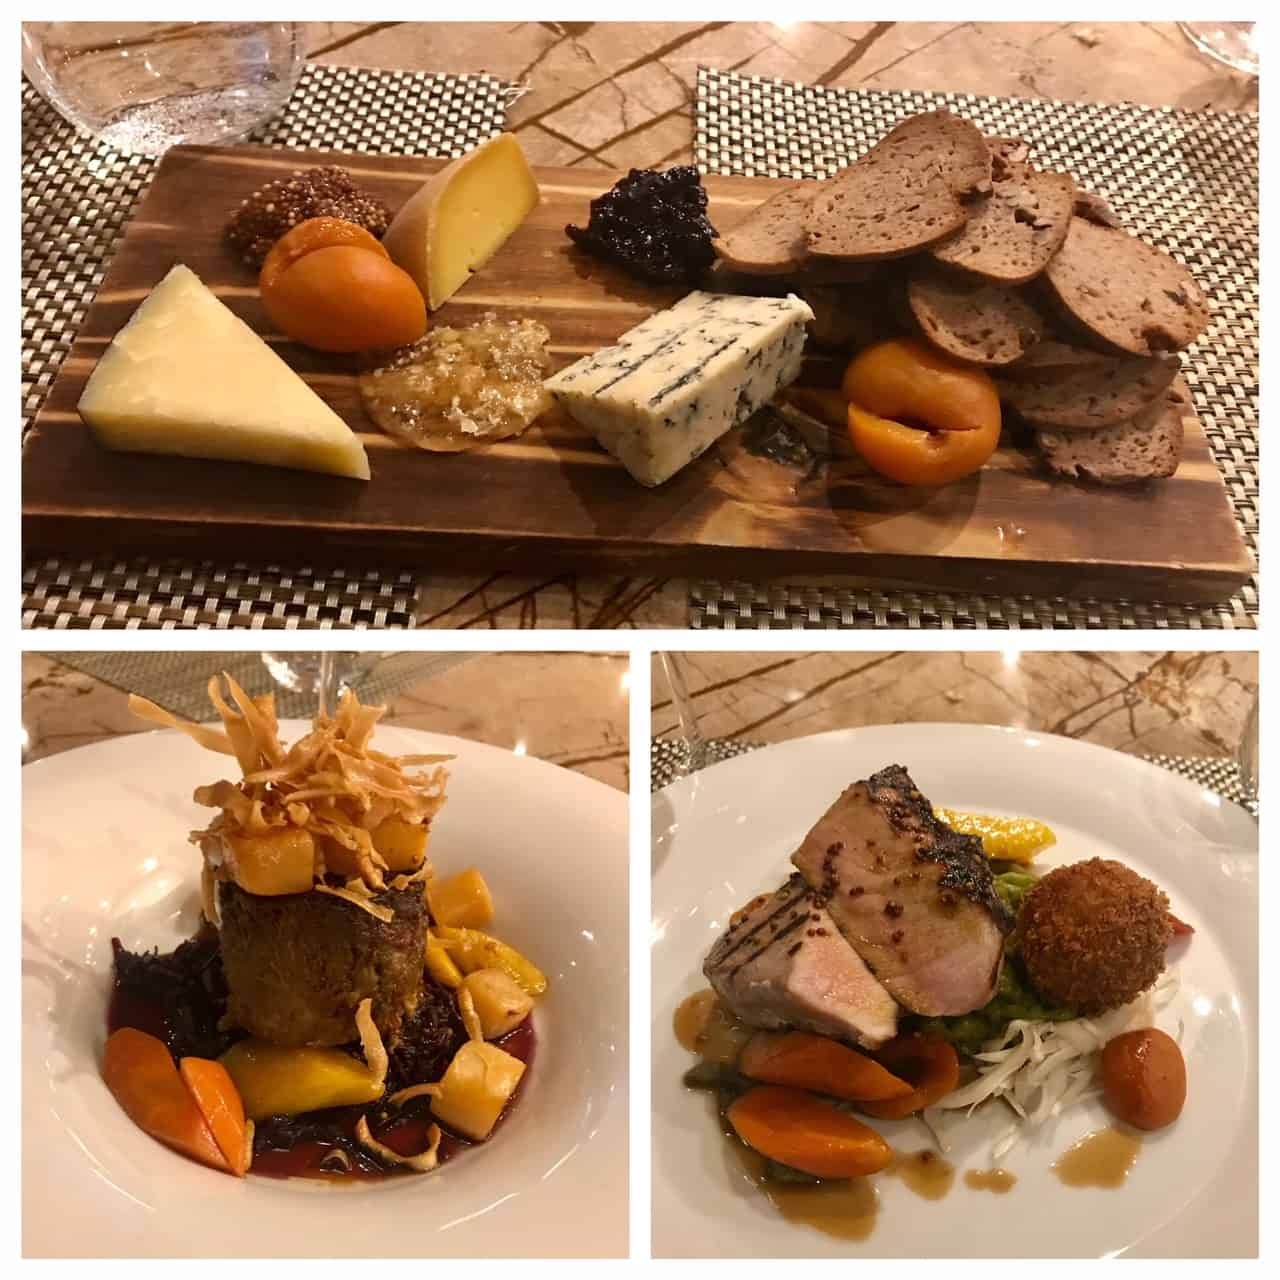 Collage of images of dishes from Treadwell Restaurant